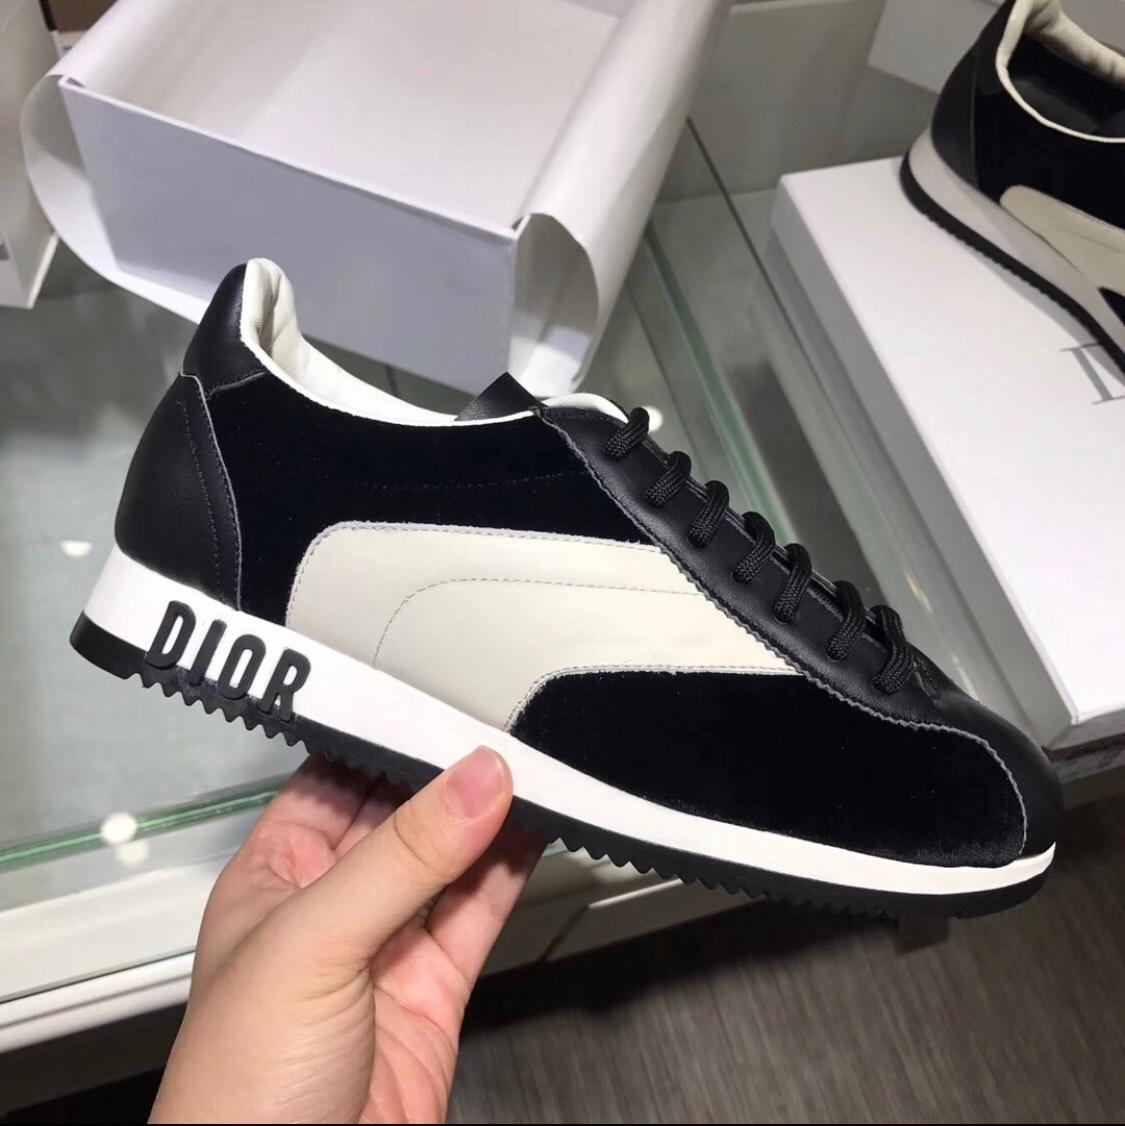 42f2f3658ce4 US 9) Regular Dior Calfskin Leather Leather Leather Sneakers Size EU 39  (Approx.